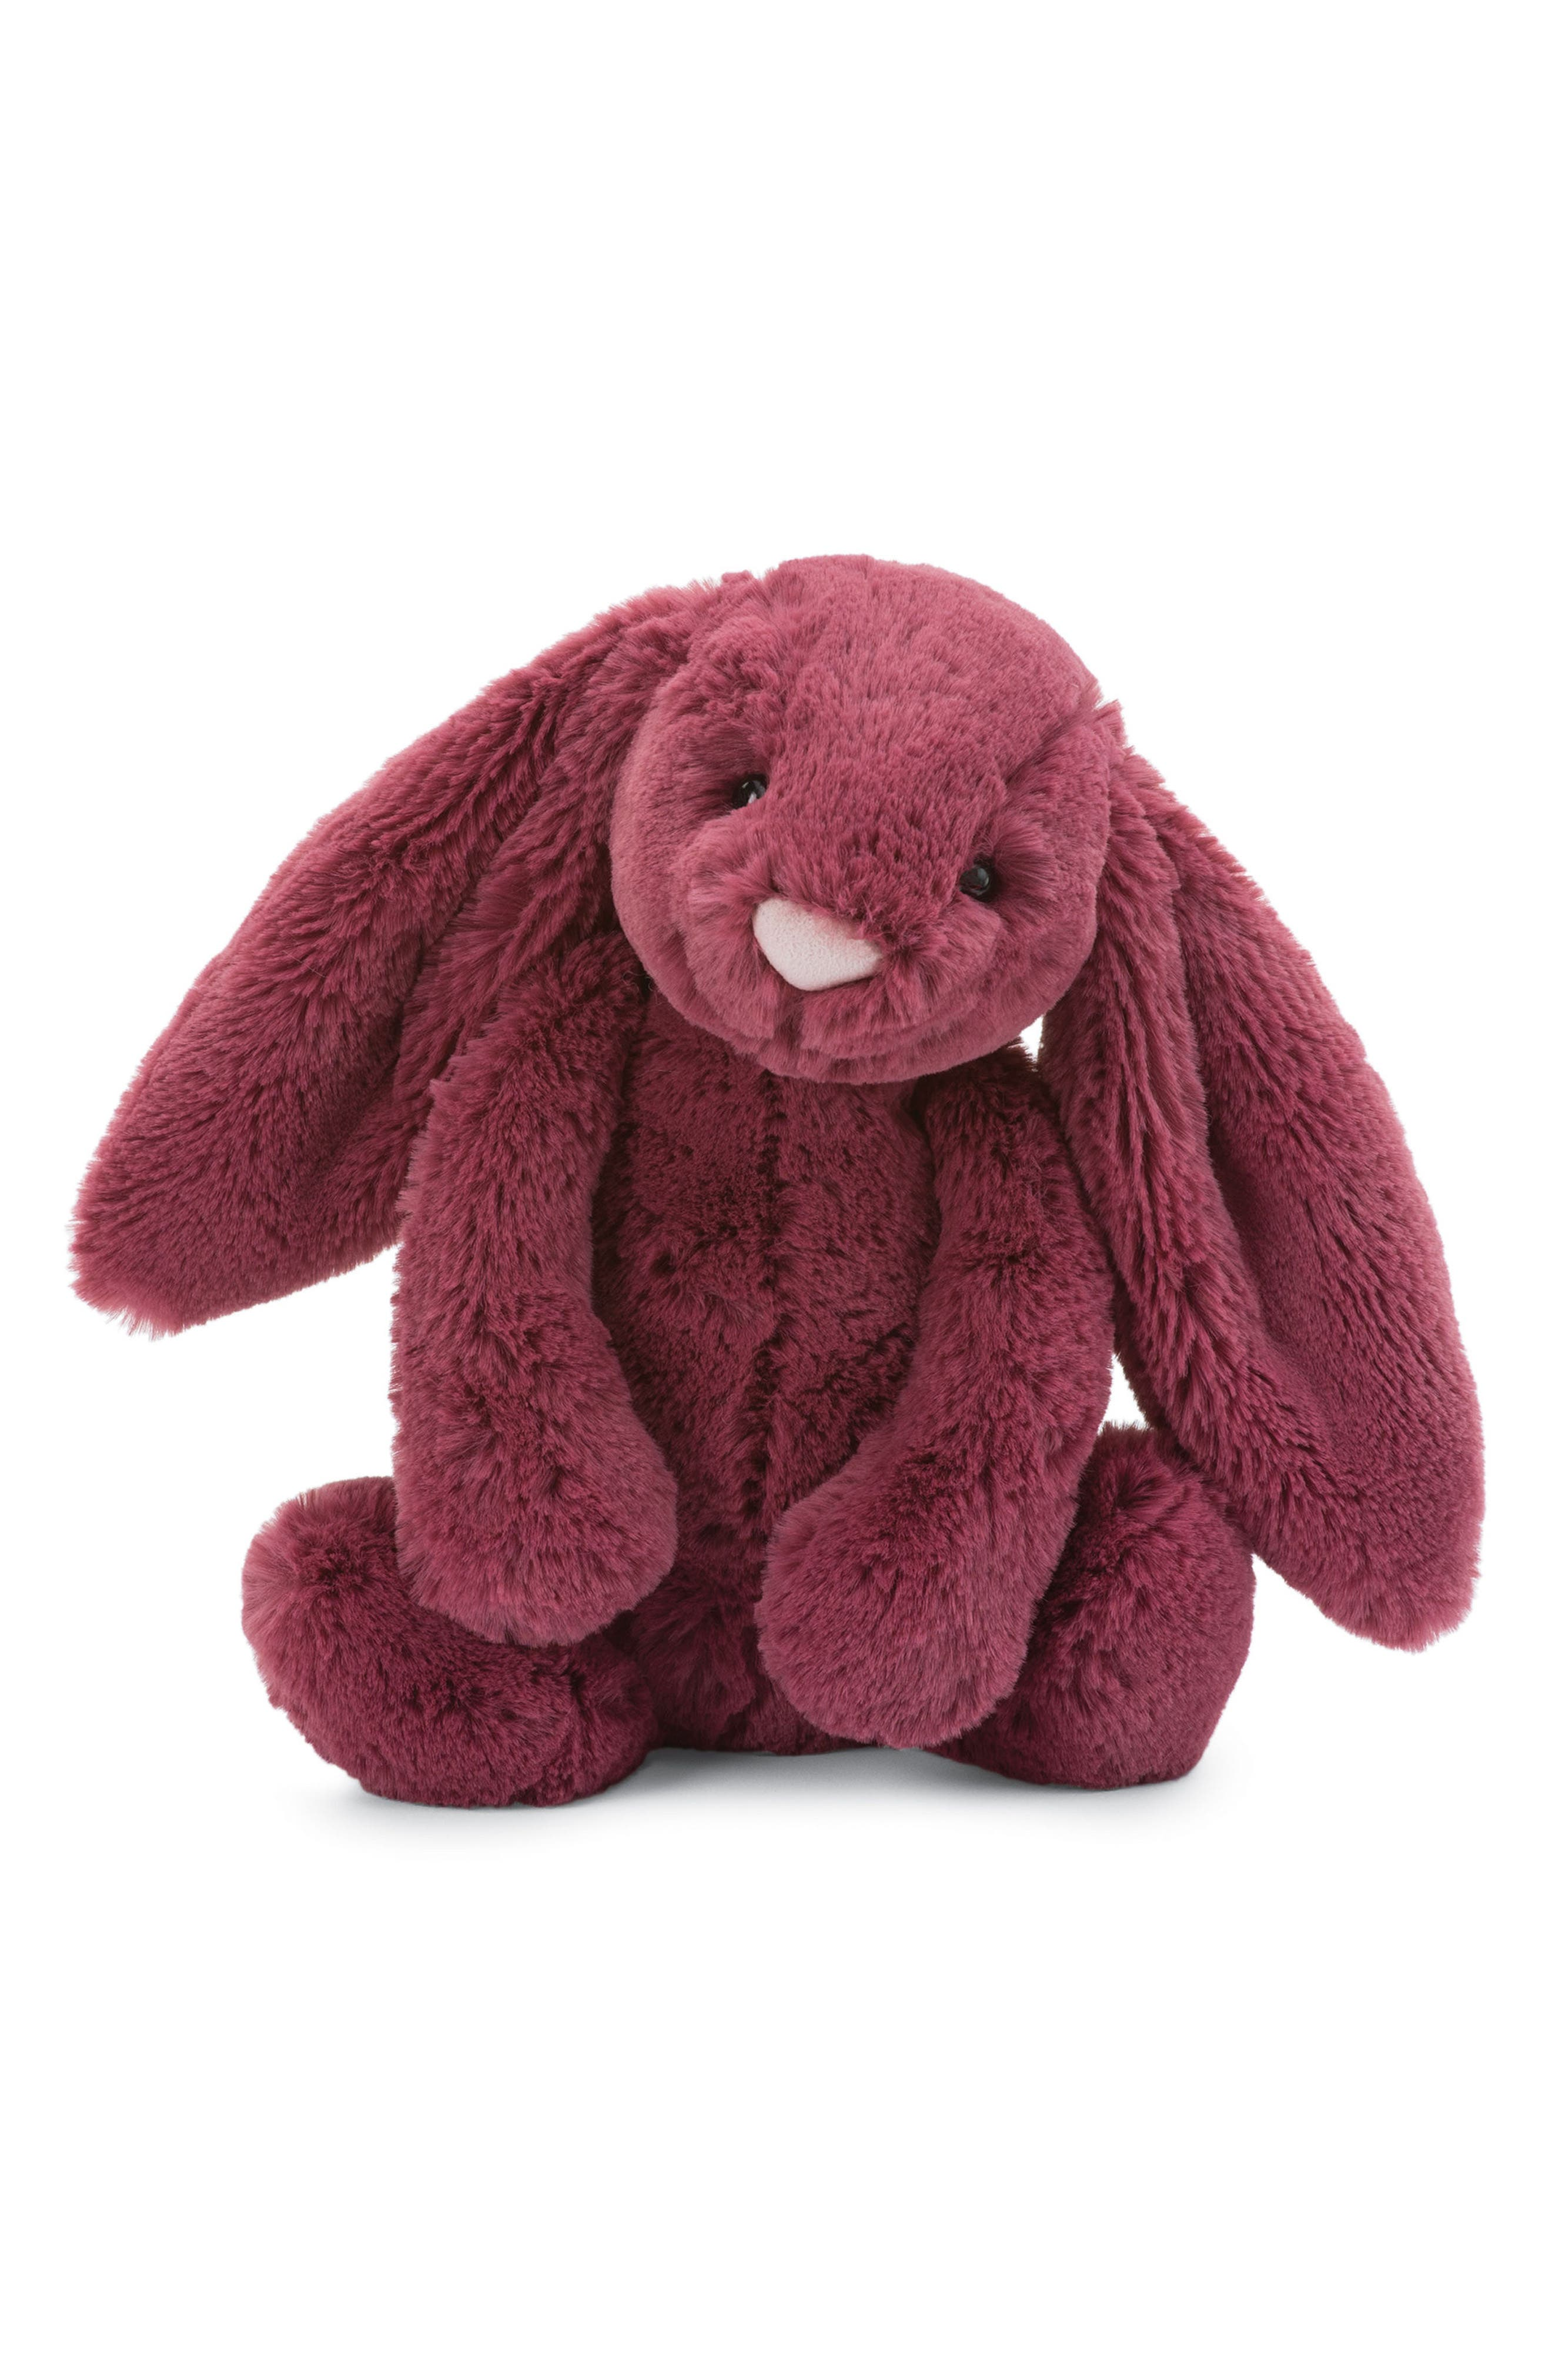 Bashful Berry Bunny Stuffed Animal,                             Main thumbnail 1, color,                             Berry